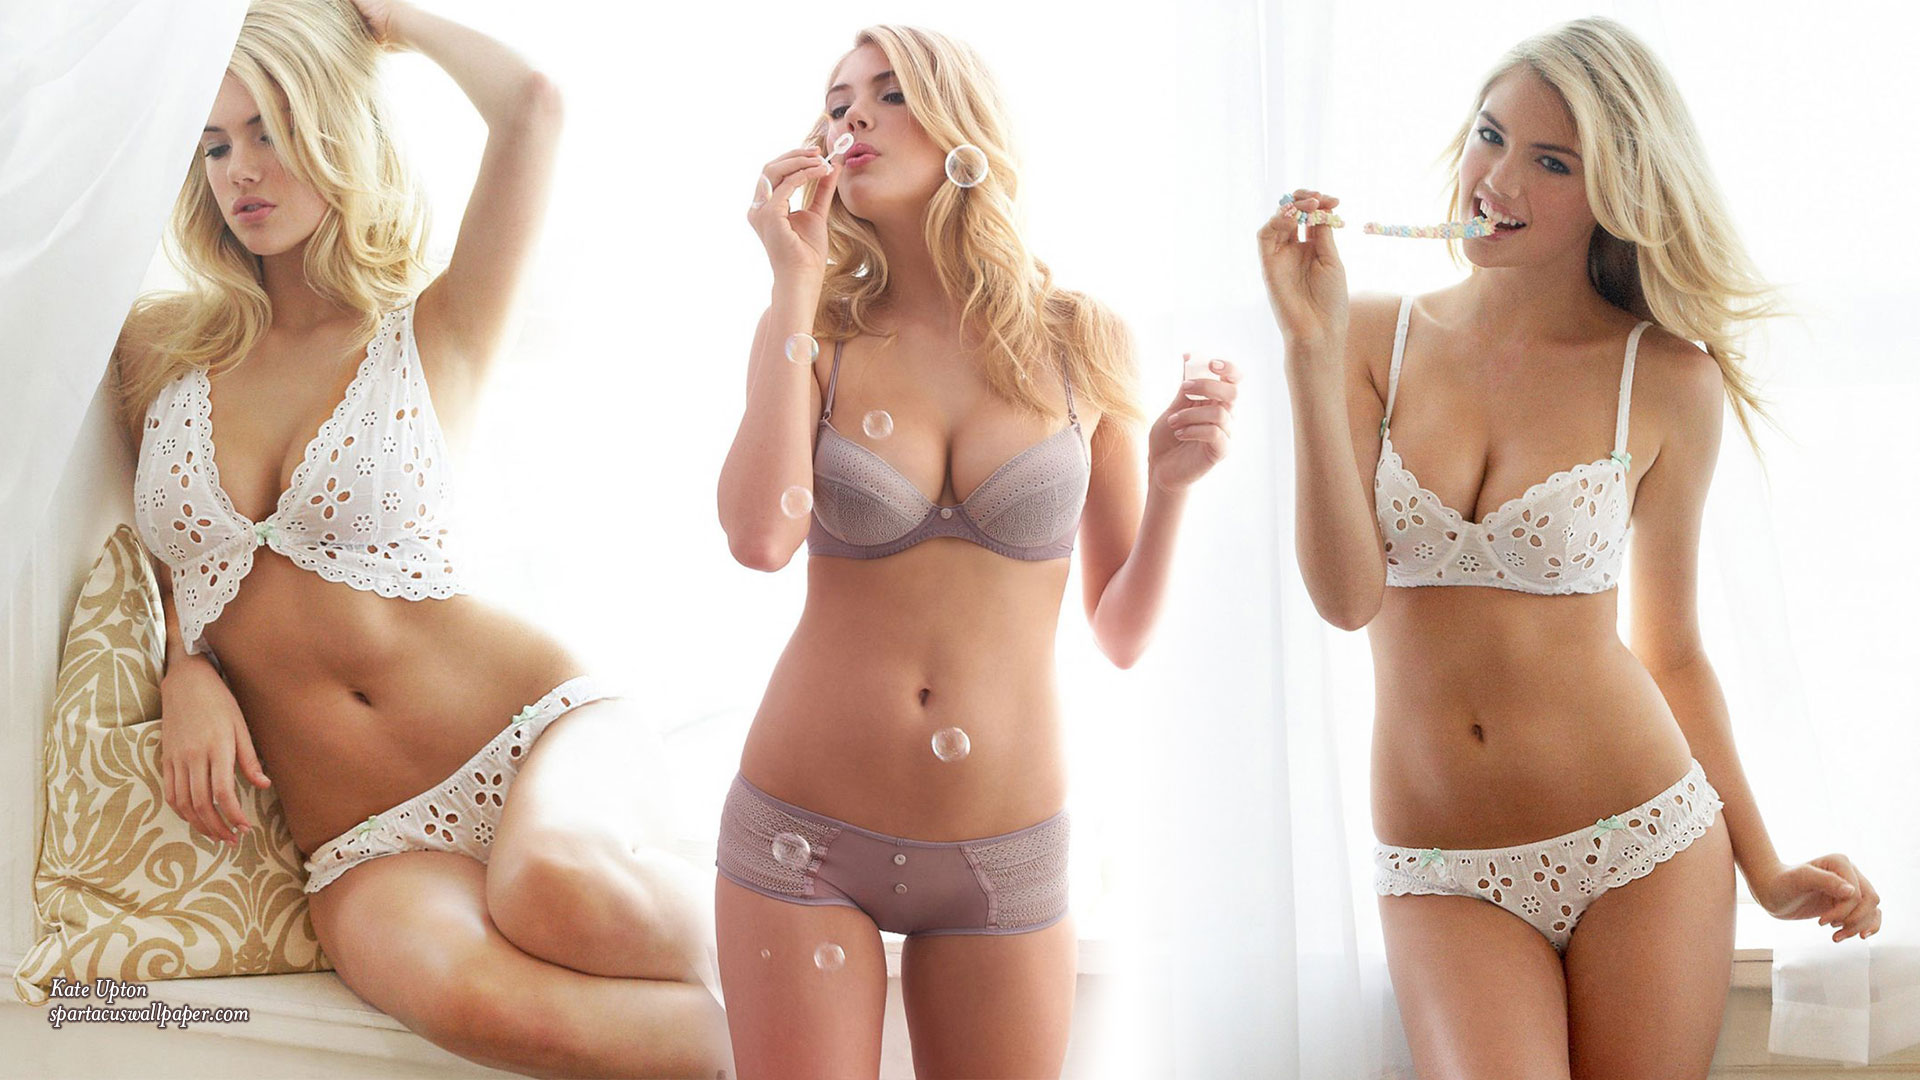 kate upton vi | desktop backgrounds | mobile home screens